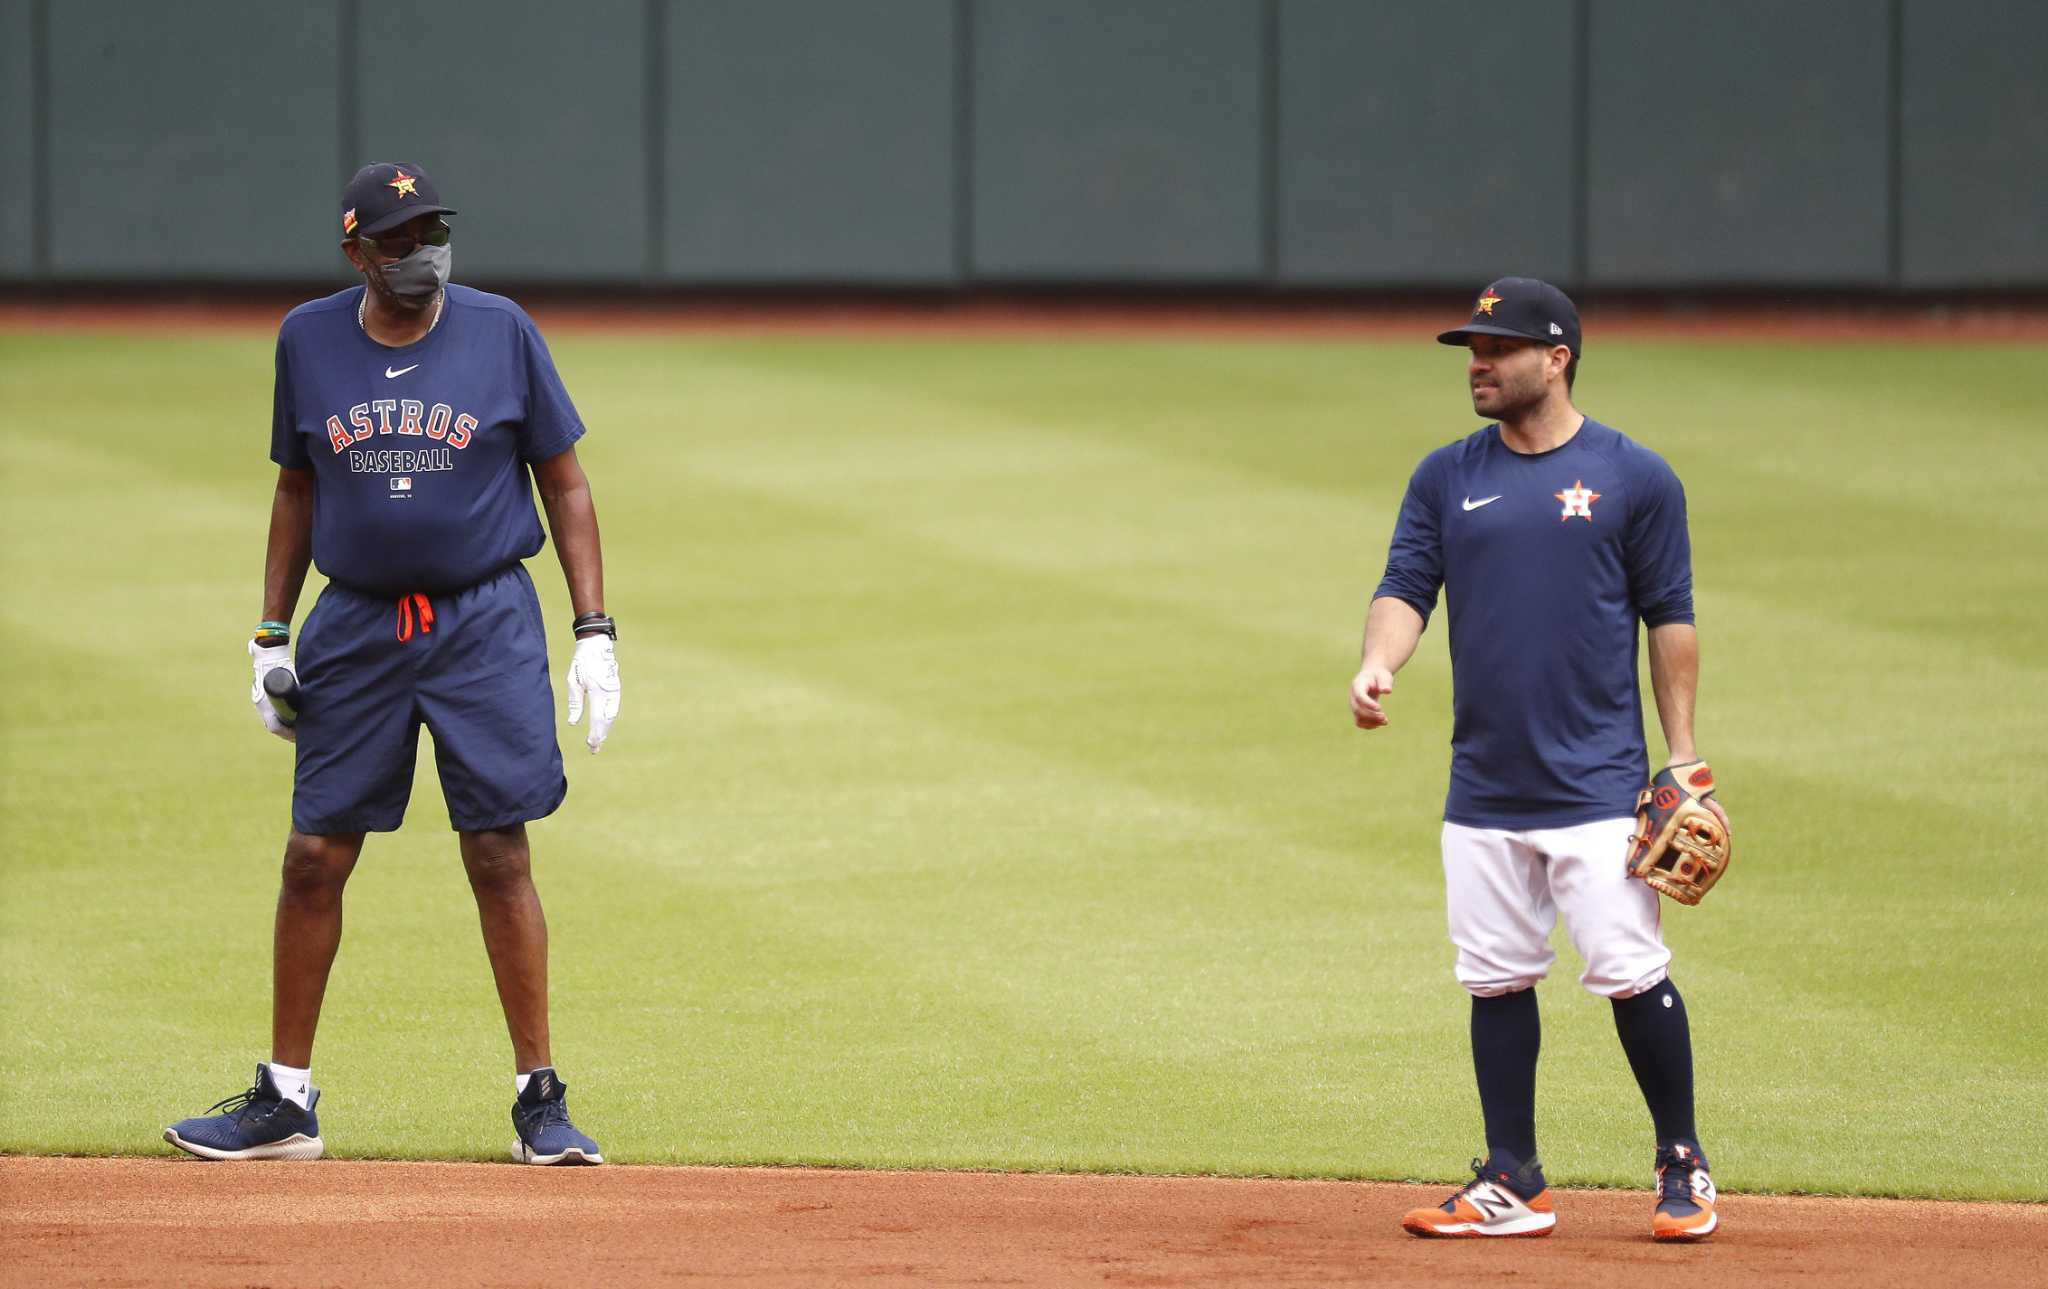 Slumping Jose Altuve to spend day off on bench with Dusty Baker